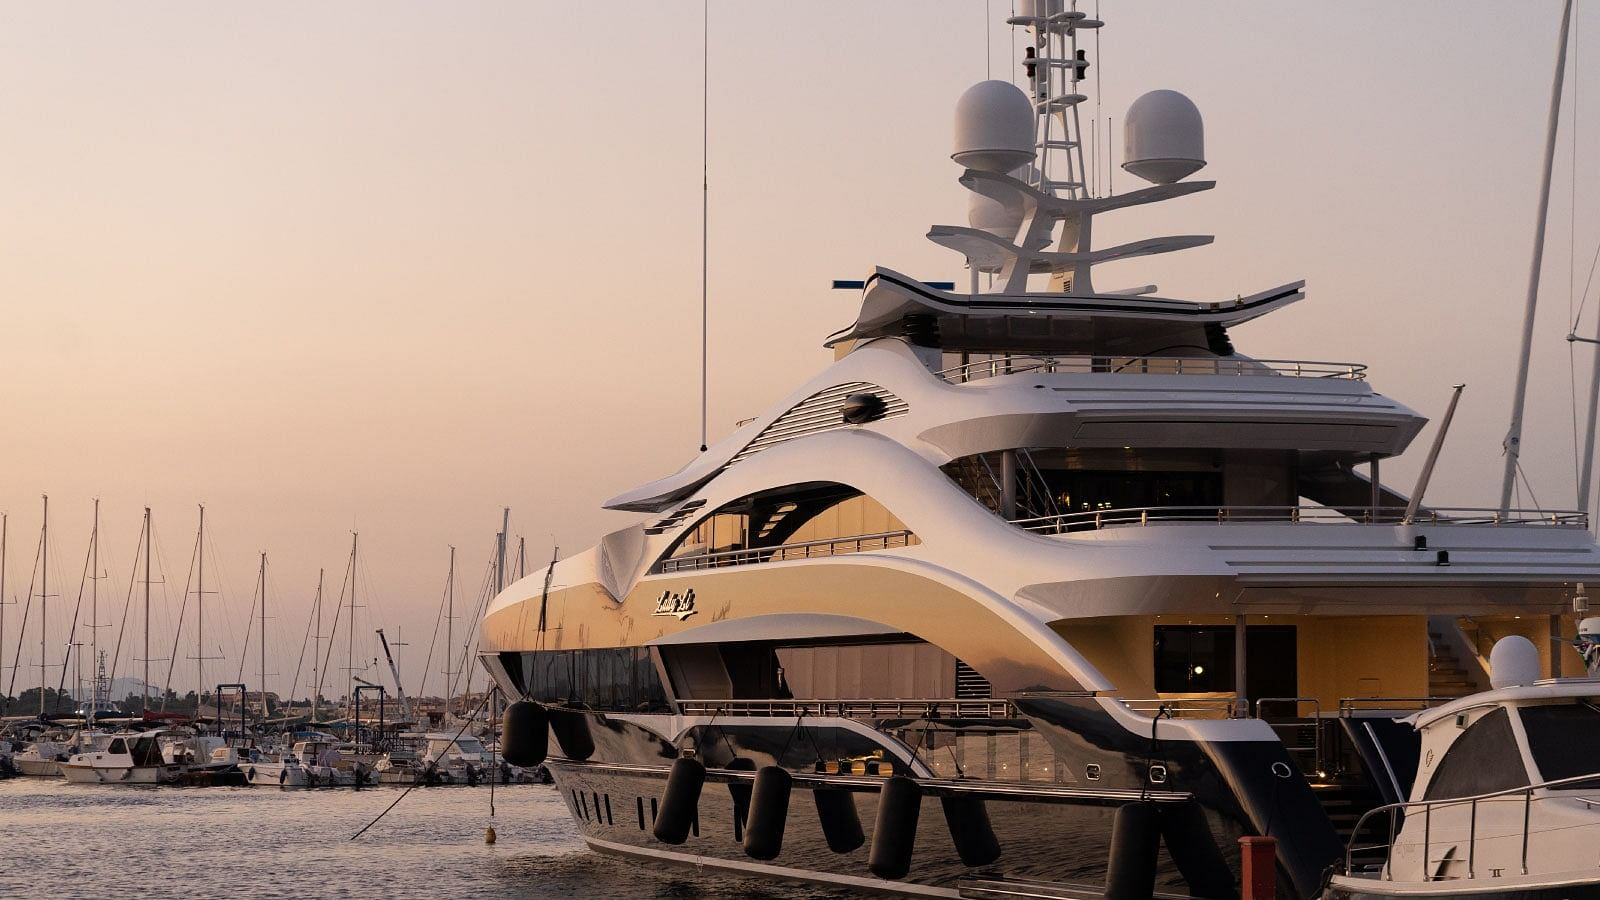 Boat activities on Cote d'Azur - Boat Charters - Yacht rental - Hire catamaran - Rental boats - Motorboat